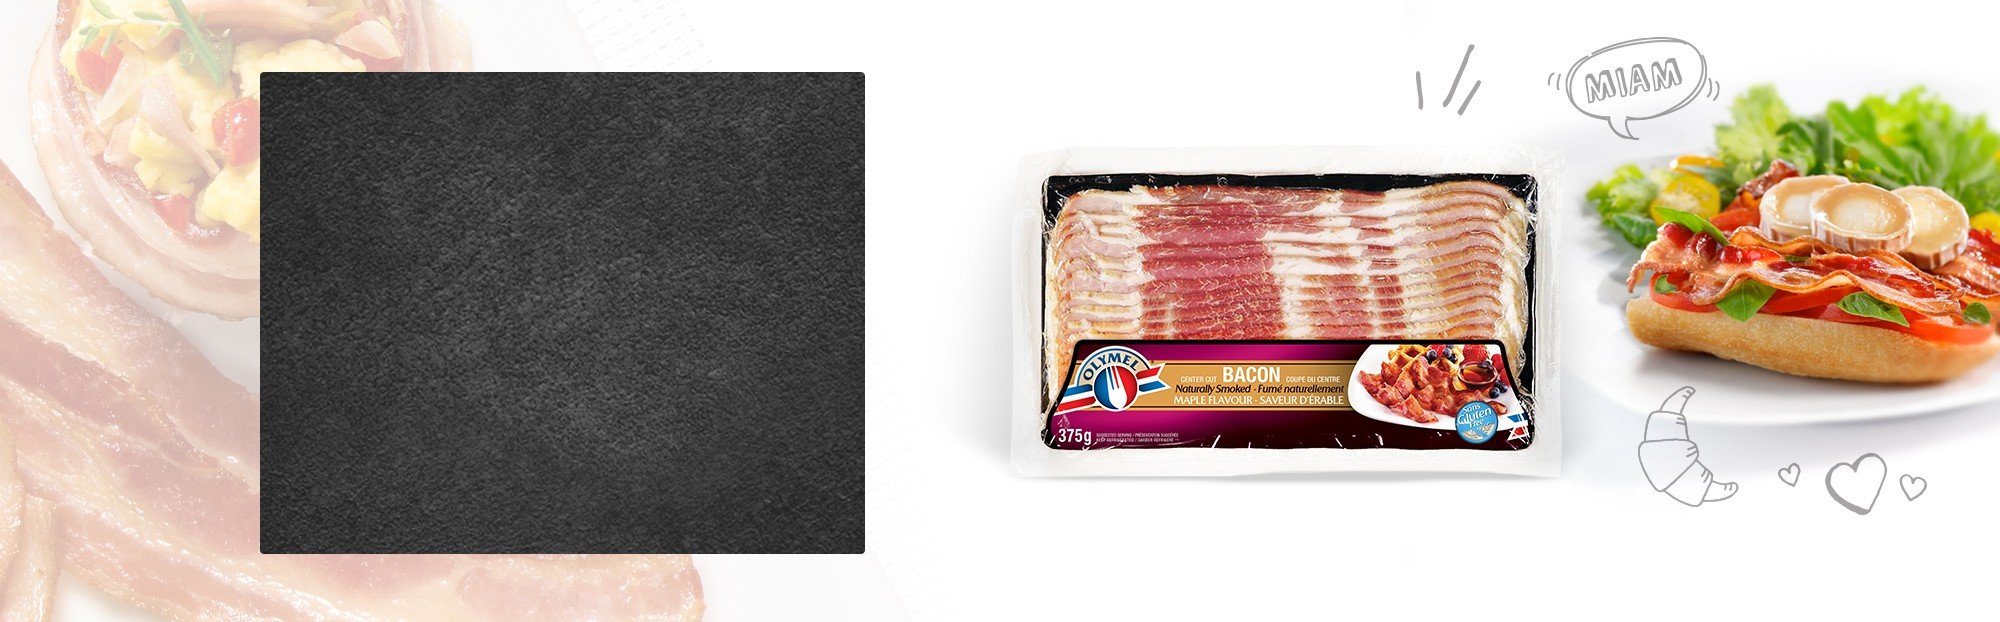 Maple Flavour Naturally Smoked Bacon